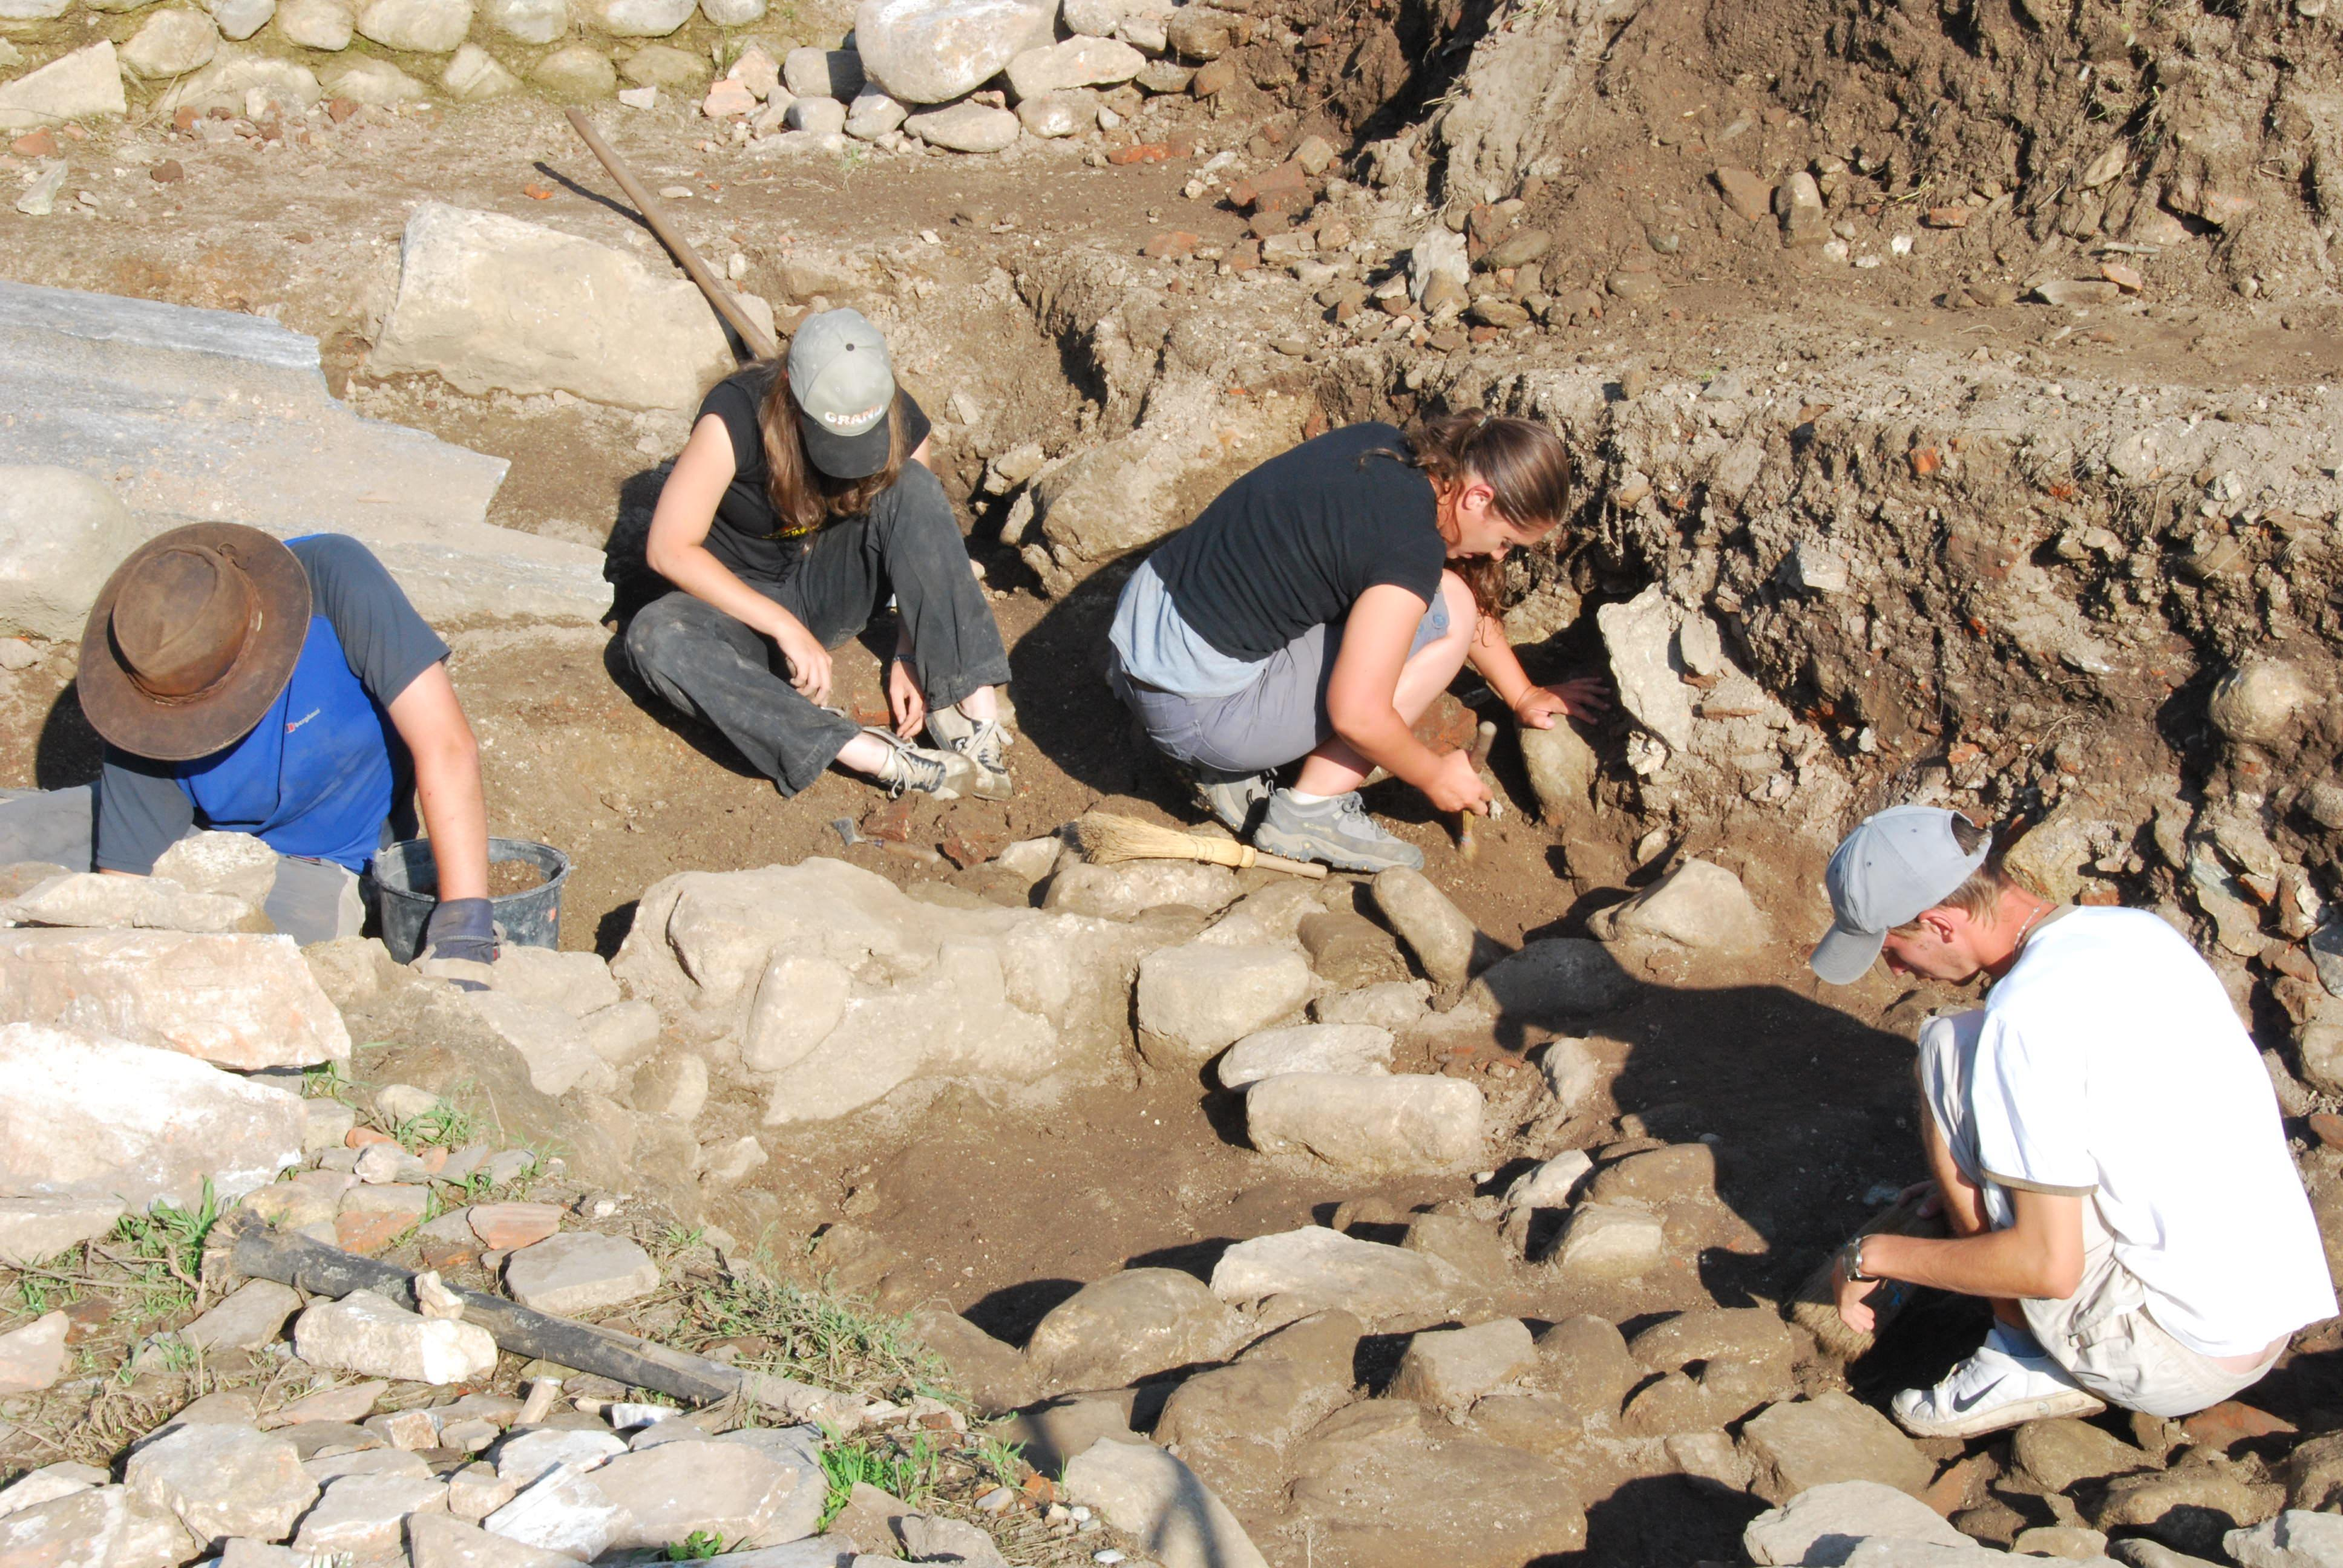 Young volunteers assist with site excavation while Archaeology volunteering in Romania for teens.